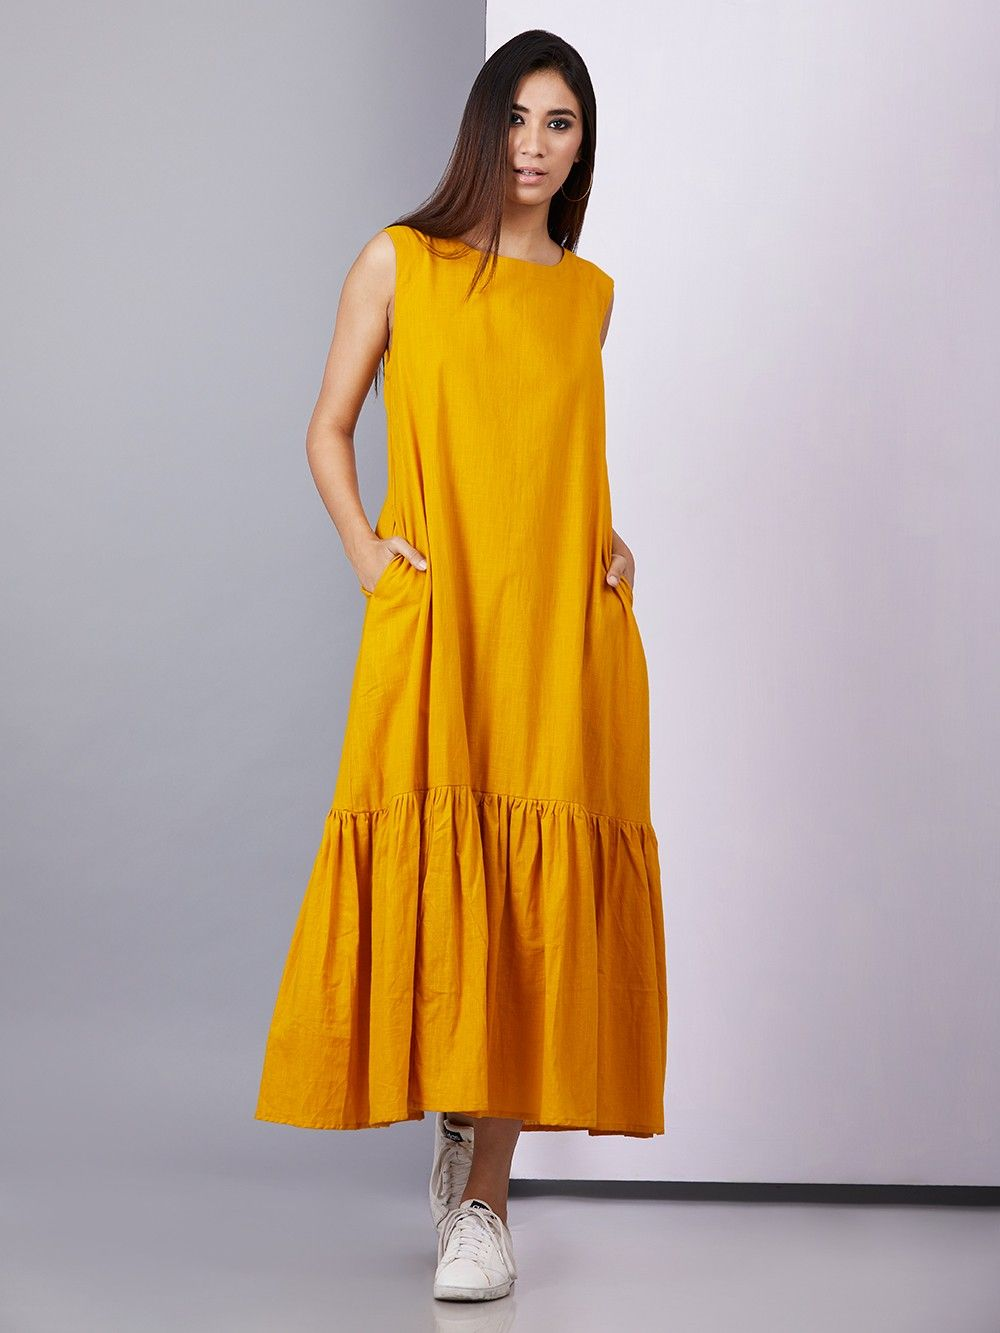 6b9a73b29f Buy Yellow Cotton Maxi Dress online at Theloom